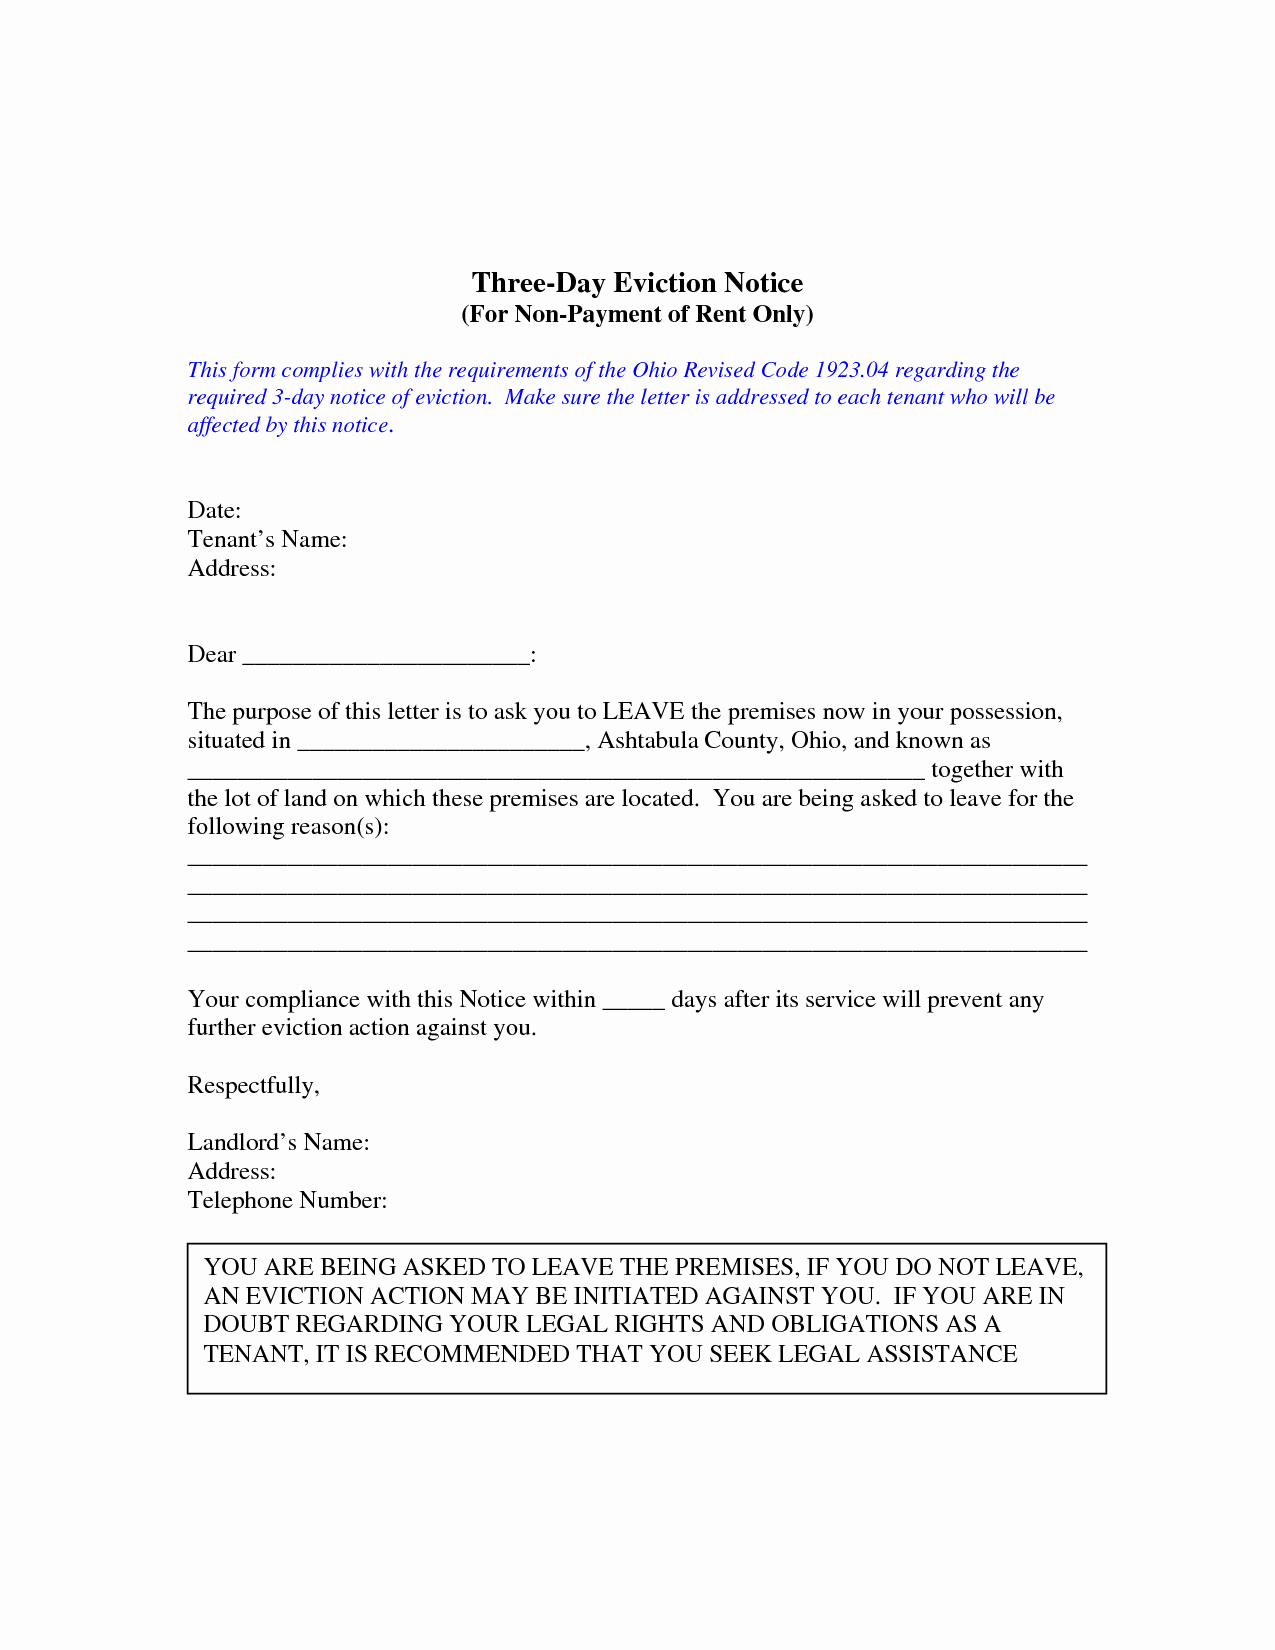 Georgia Eviction Notice Template Luxury Examples Eviction Notices Portablegasgrillweber